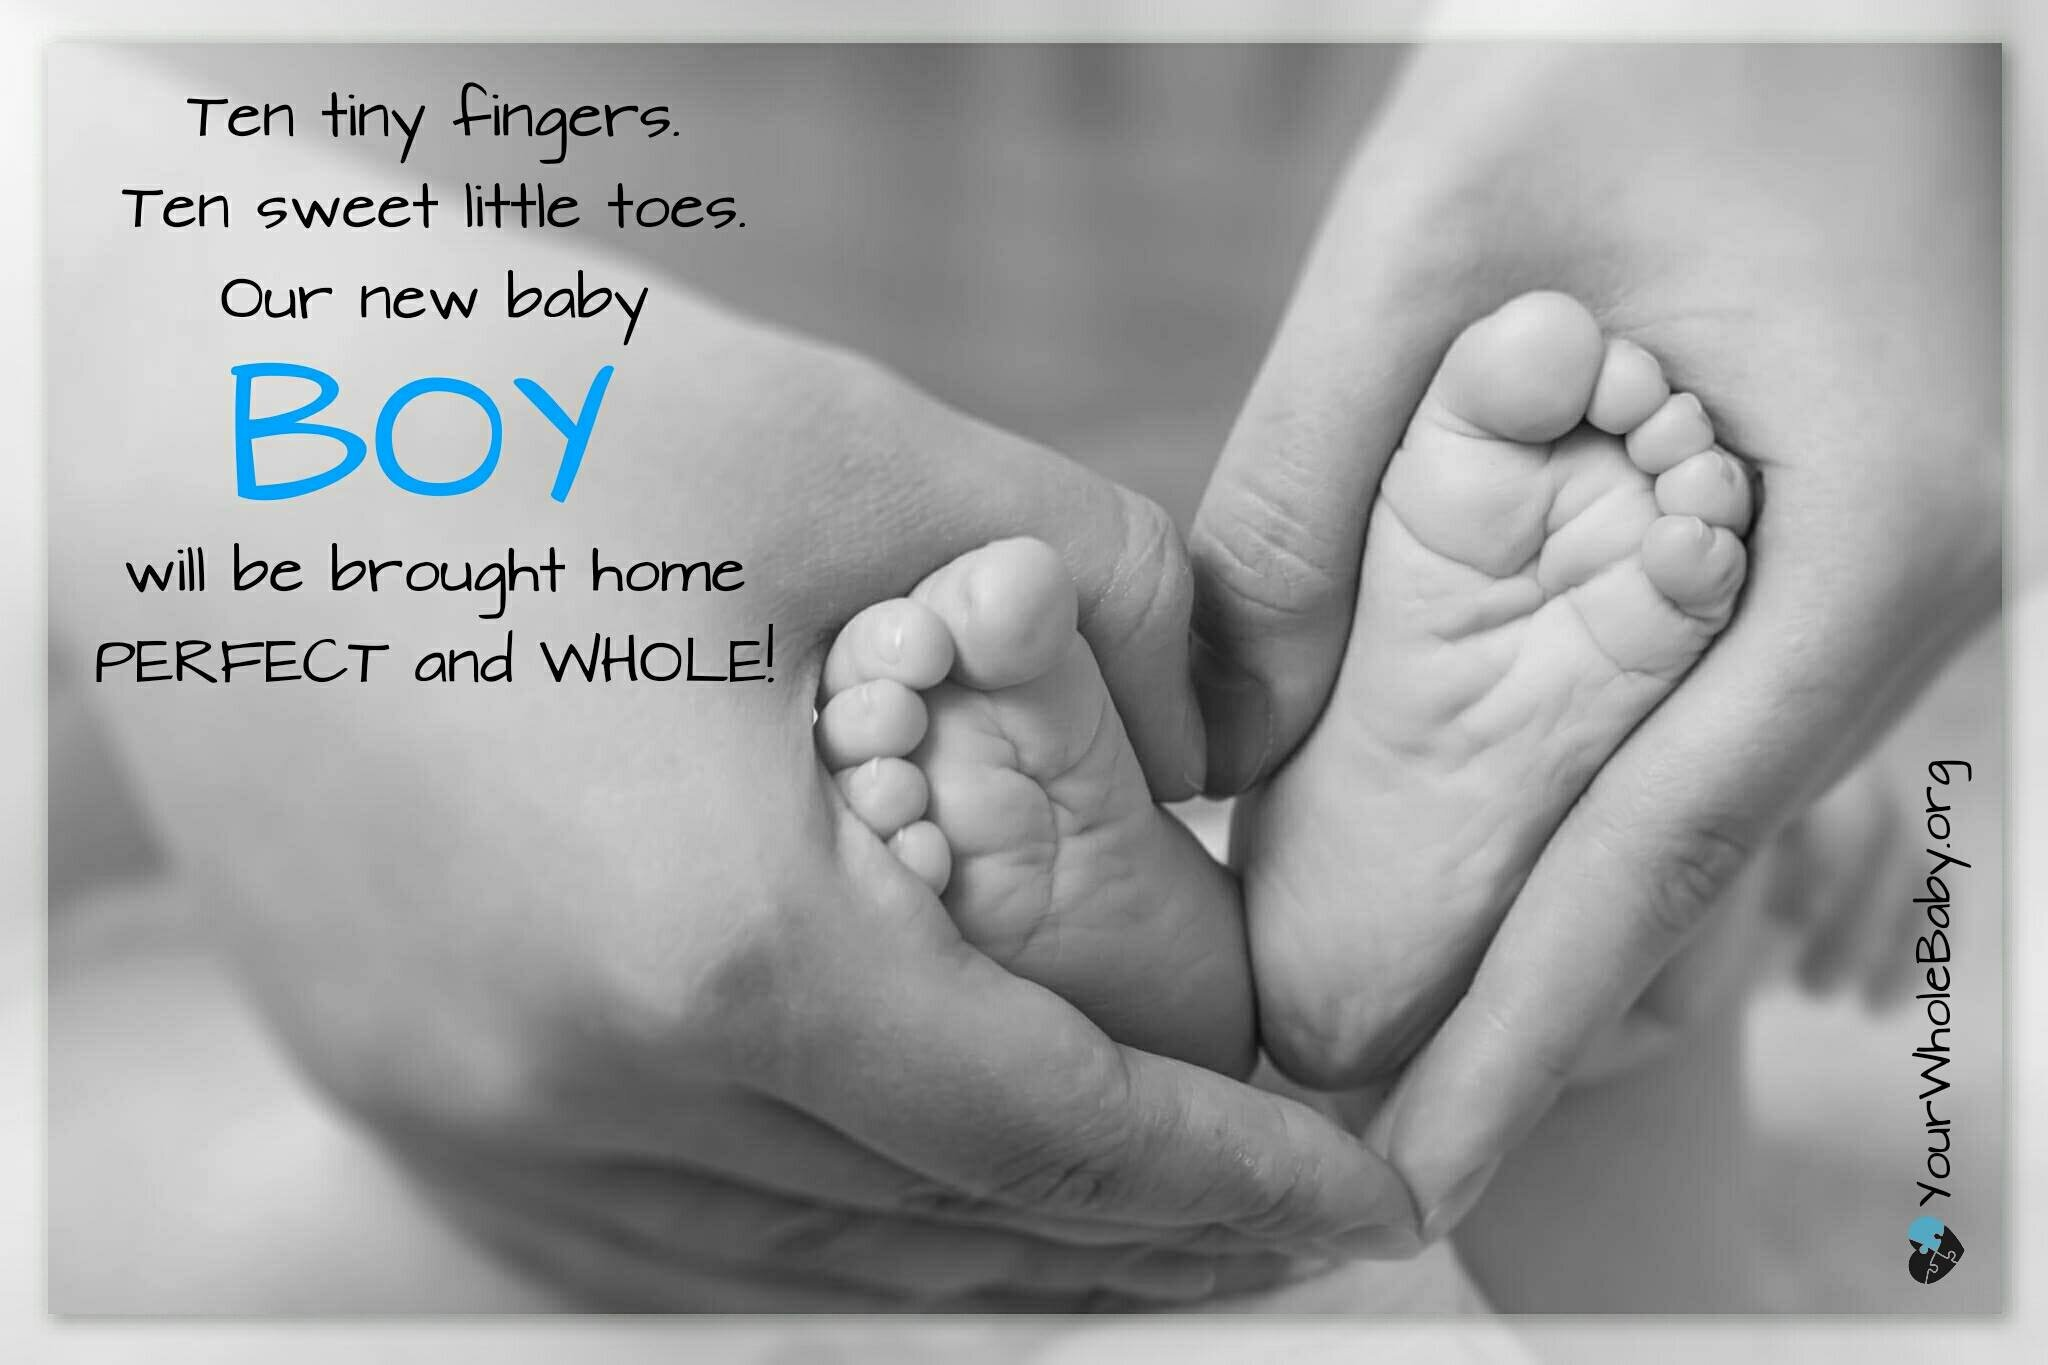 """IMG Description: Black-and-white photo of a parent's hands holding a baby's feet, heels together, in the shape of a heart. Text: """"Ten tiny fingers, ten sweet little toes. Our new baby boy will be brought home perfect and whole! Yourwholebaby.org"""""""